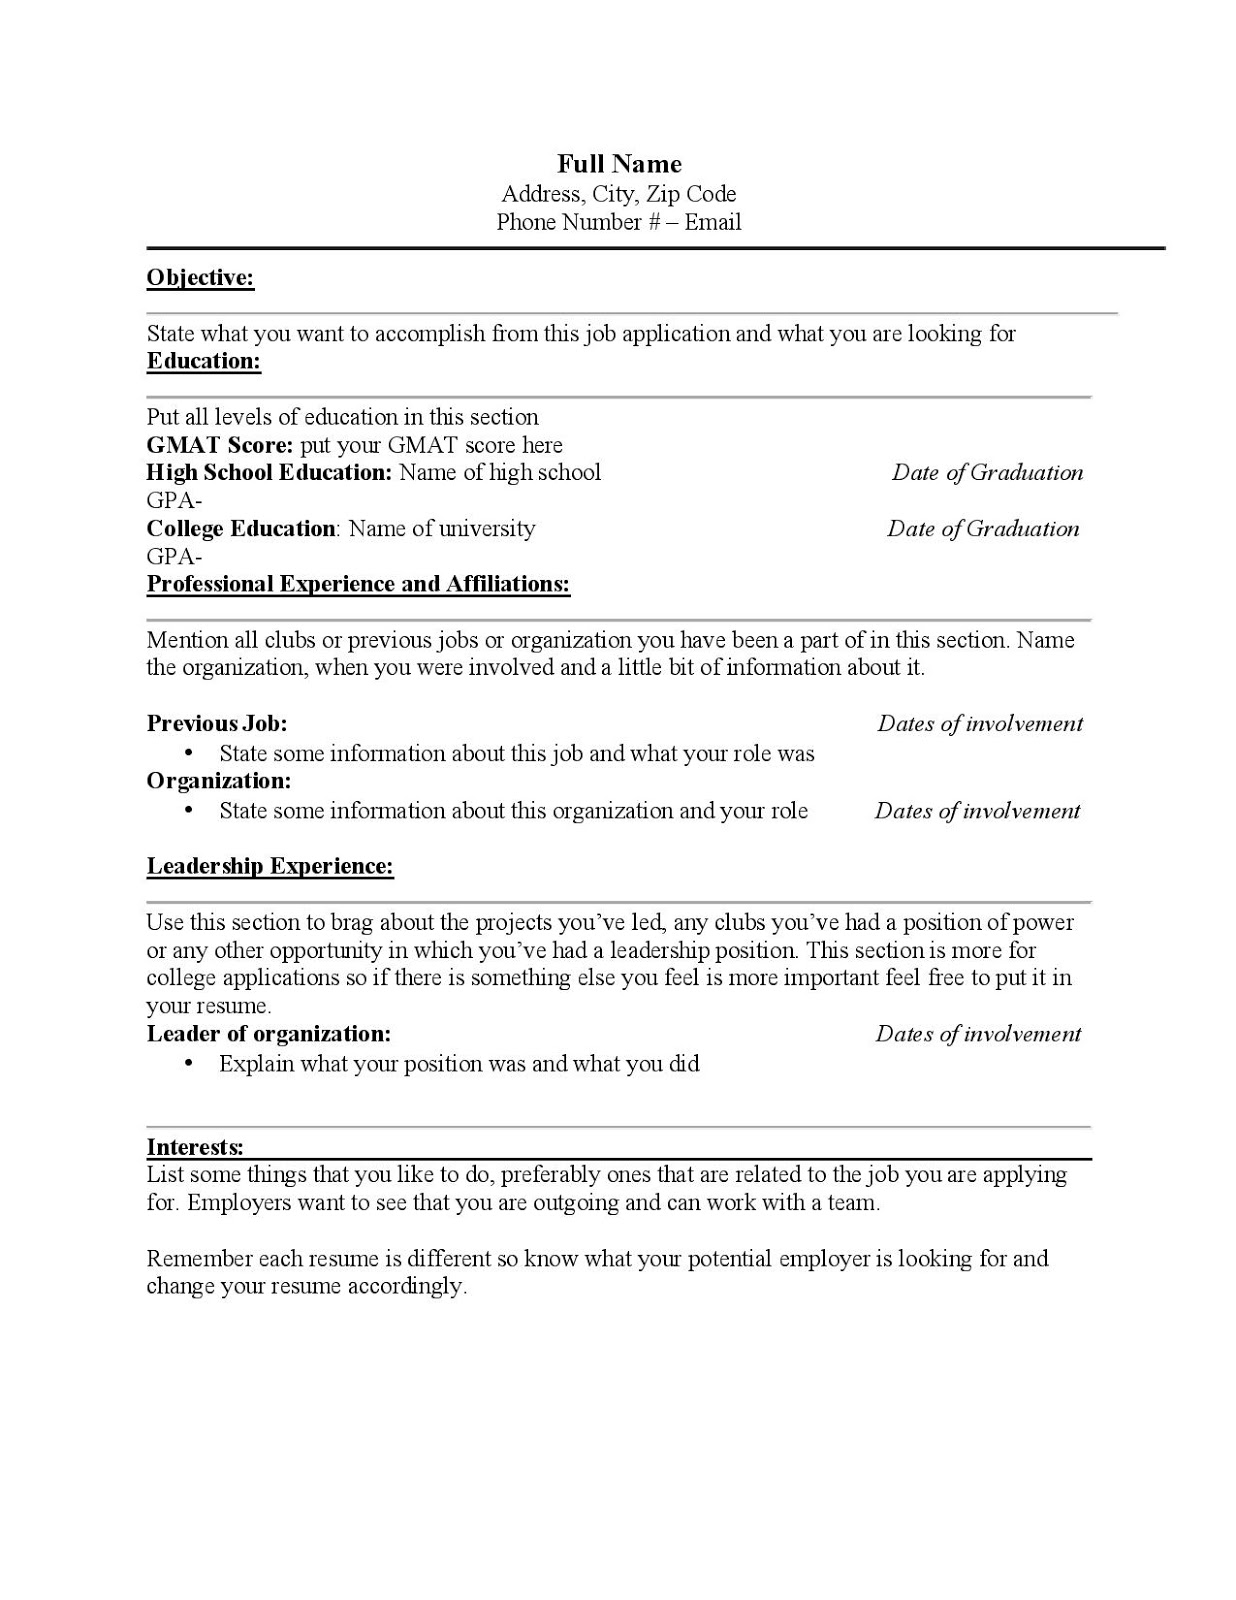 Main Differences Between A Job Resume And A University Resume  Things To Put In Your Resume